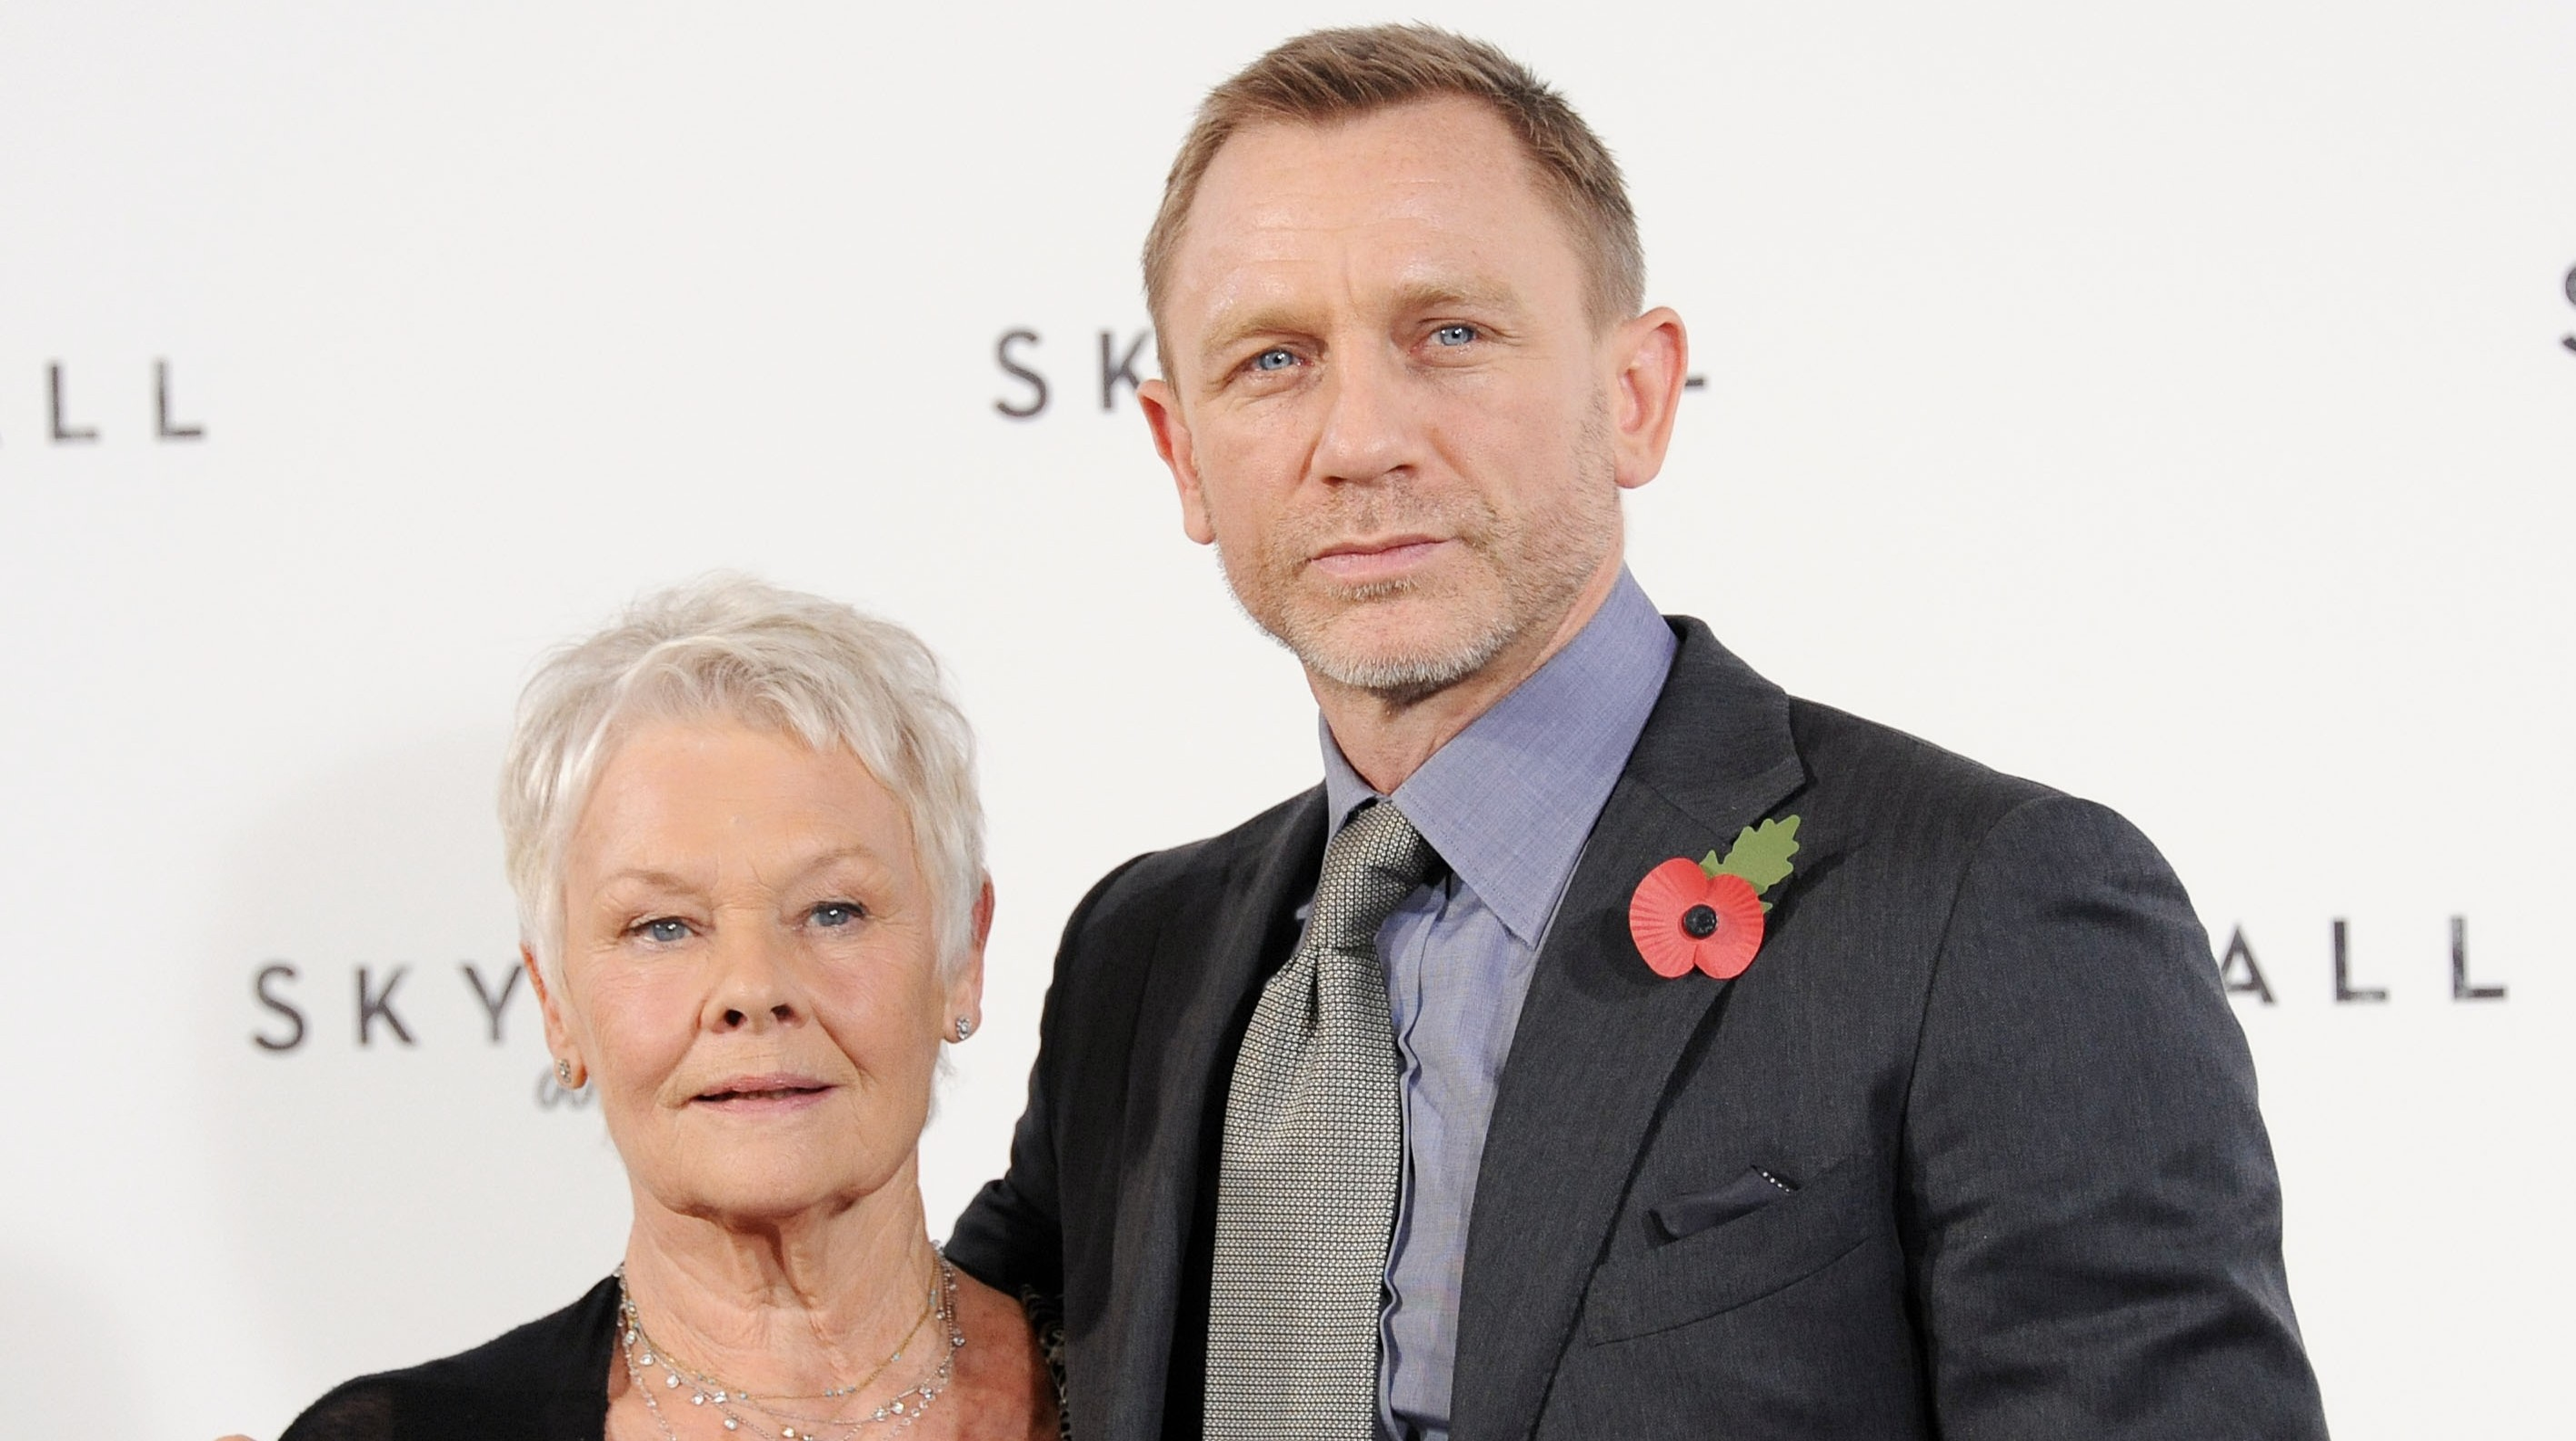 James Bond fan uncovers M's real name from Skyfall scene